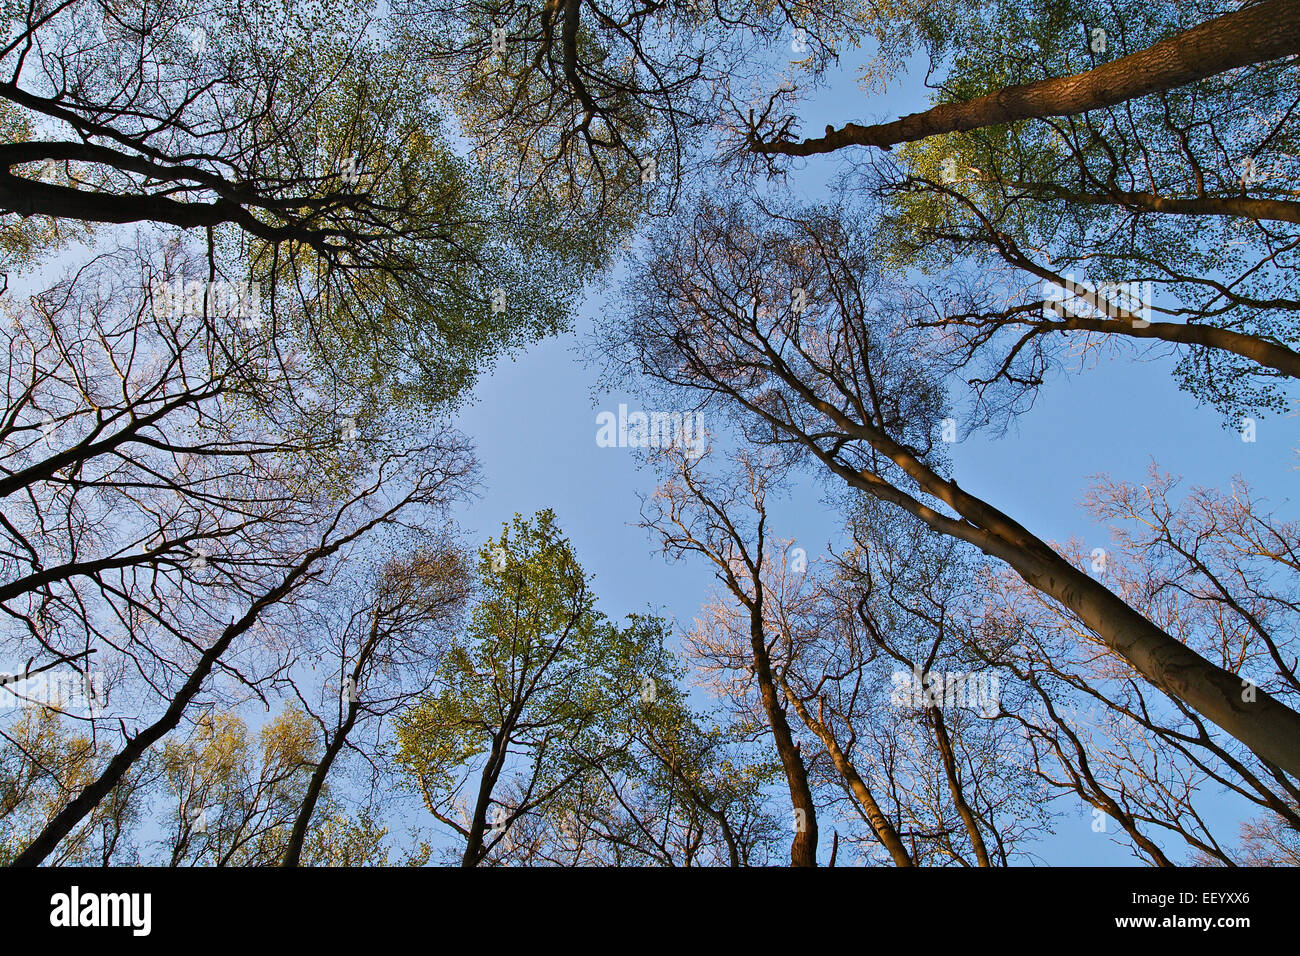 Treetops in the forest. - Stock Image